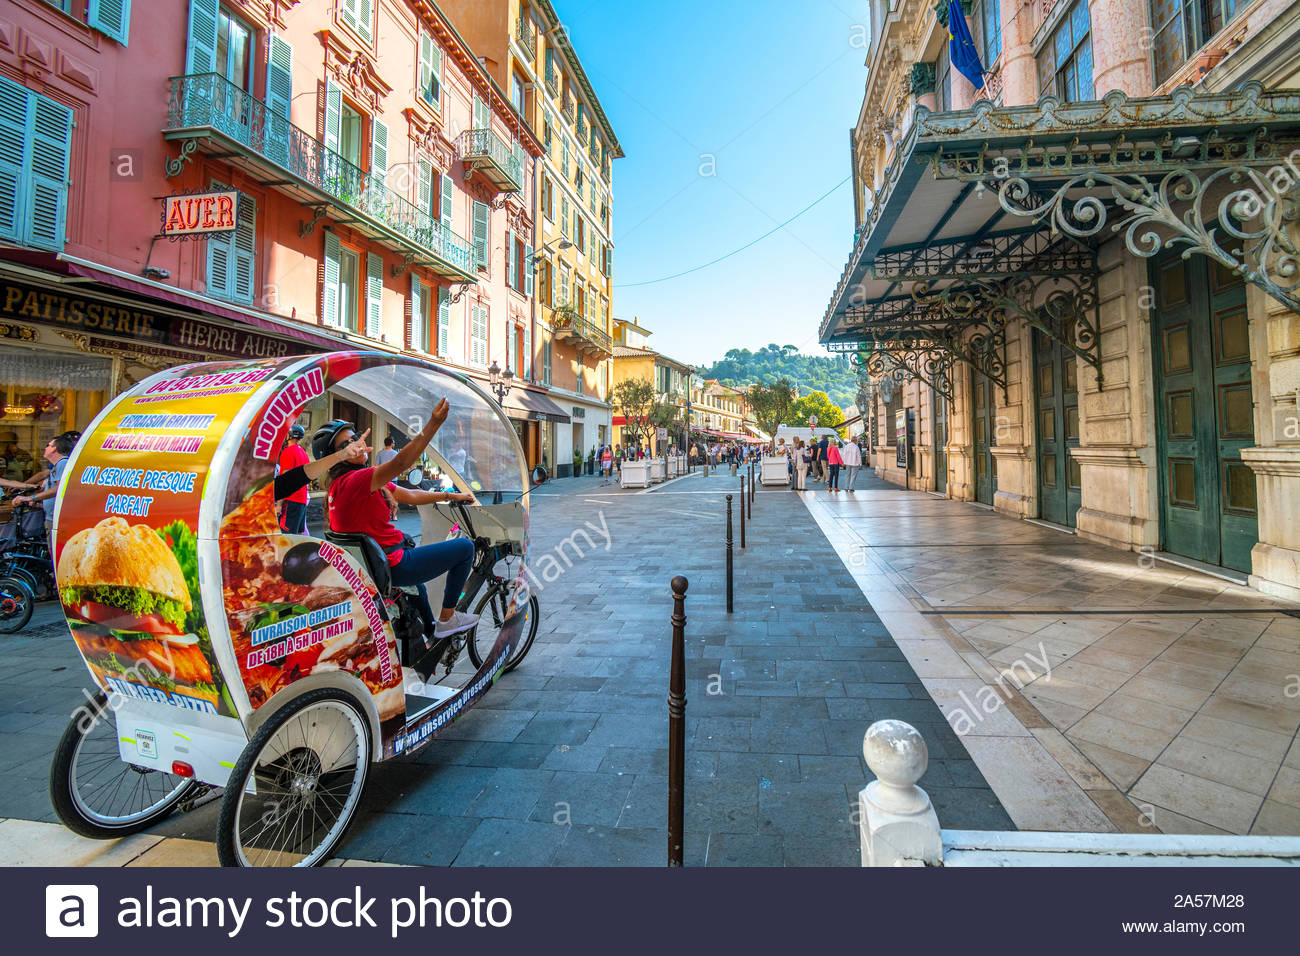 A female cyclist taxi driver guides tourists on a 3 wheel rickshaw bicycle through the Old City of Nice, France on the French Riviera. Stock Photo